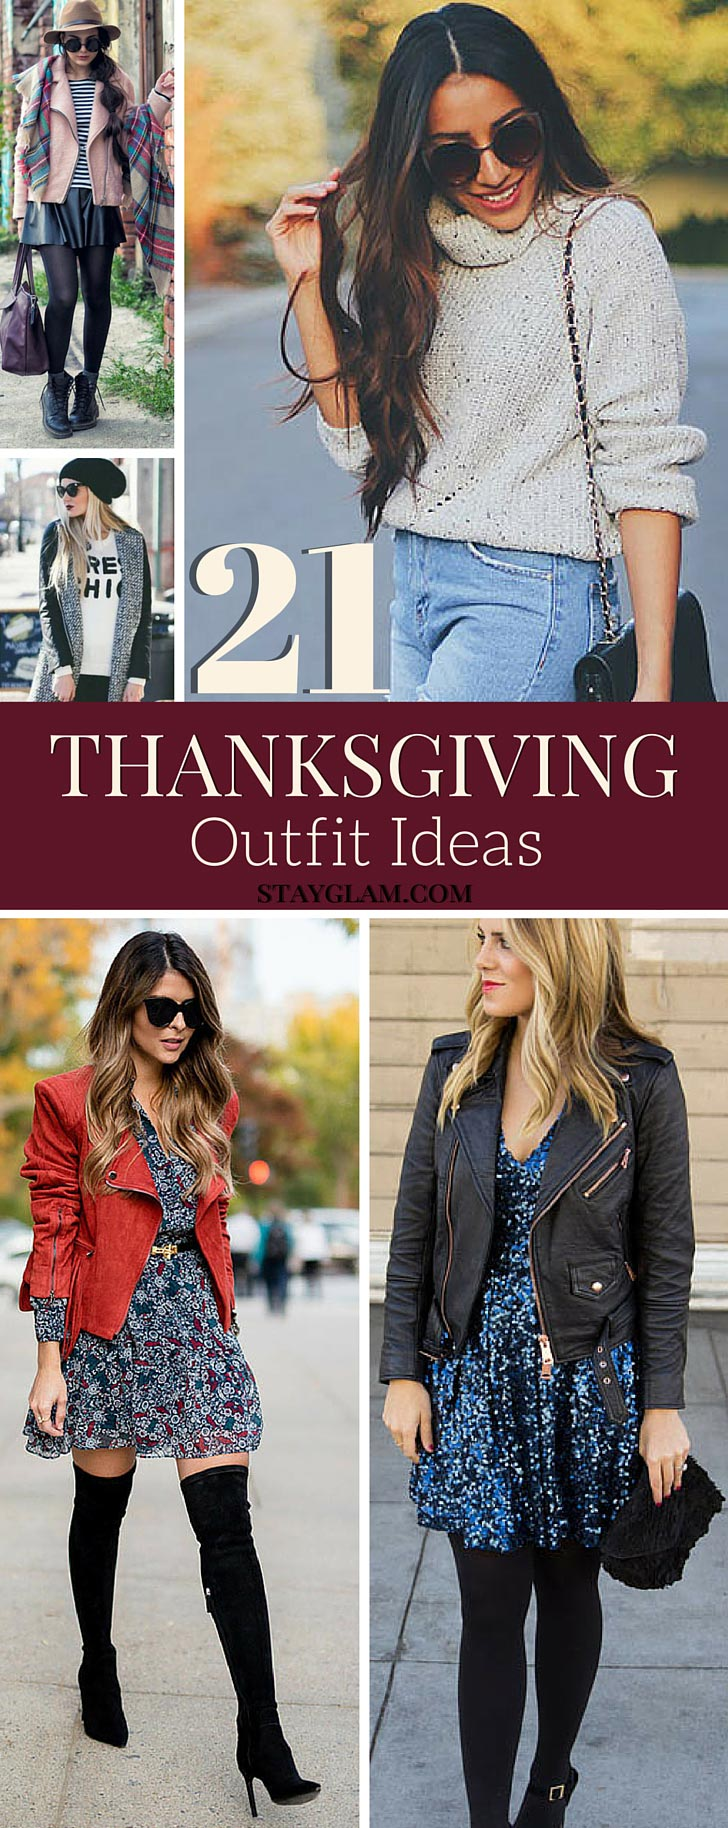 21 Comfy Stylish Thanksgiving Outfits